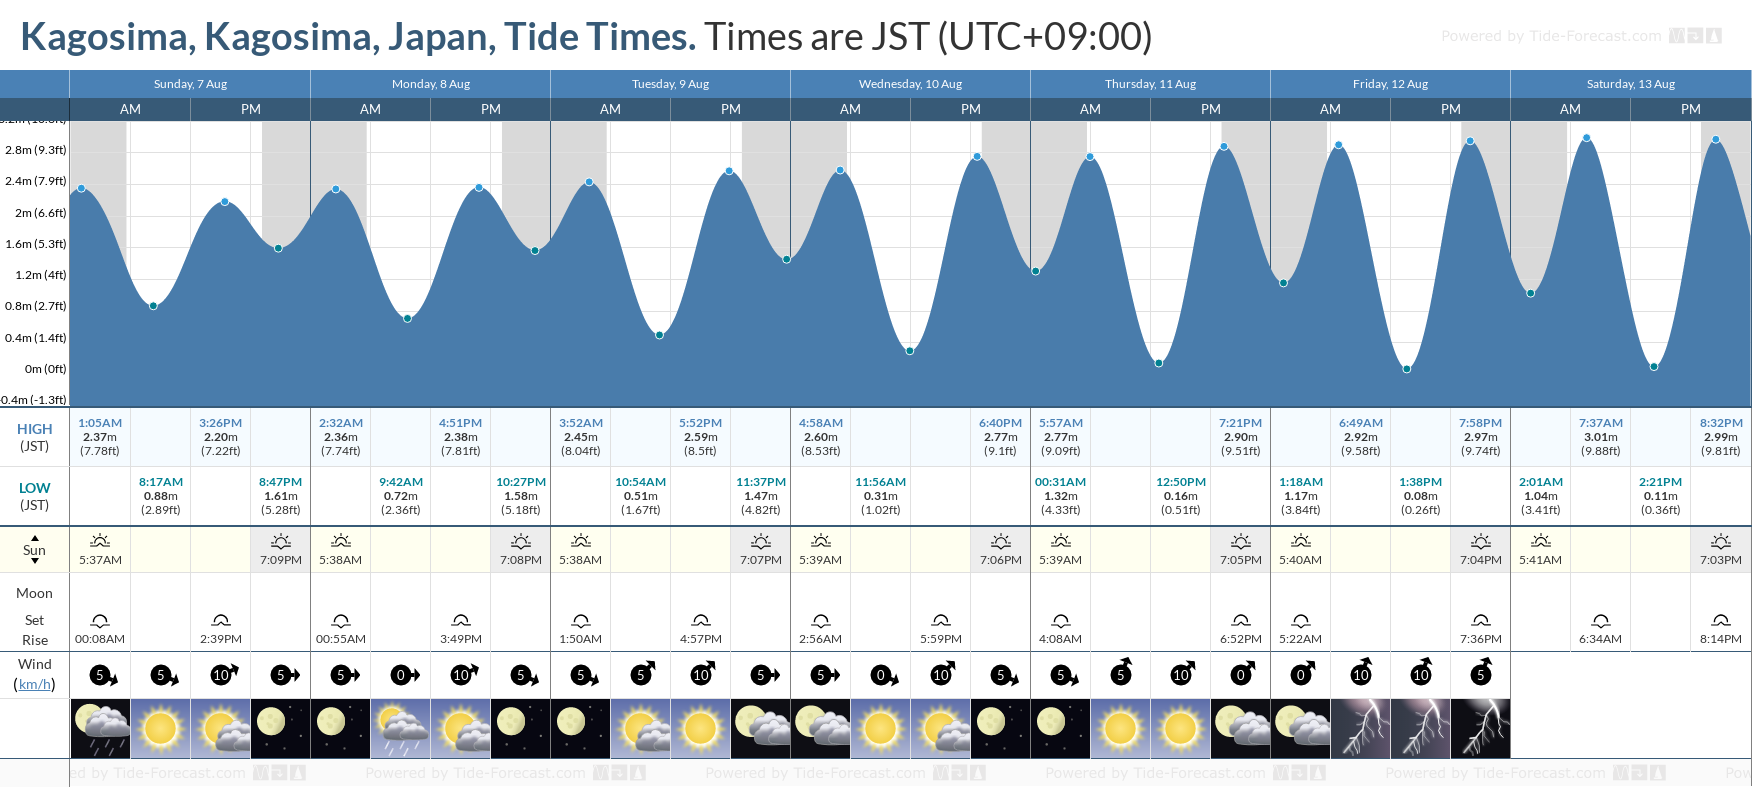 Kagosima, Kagosima, Japan Tide Chart including high and low tide tide times for the next 7 days